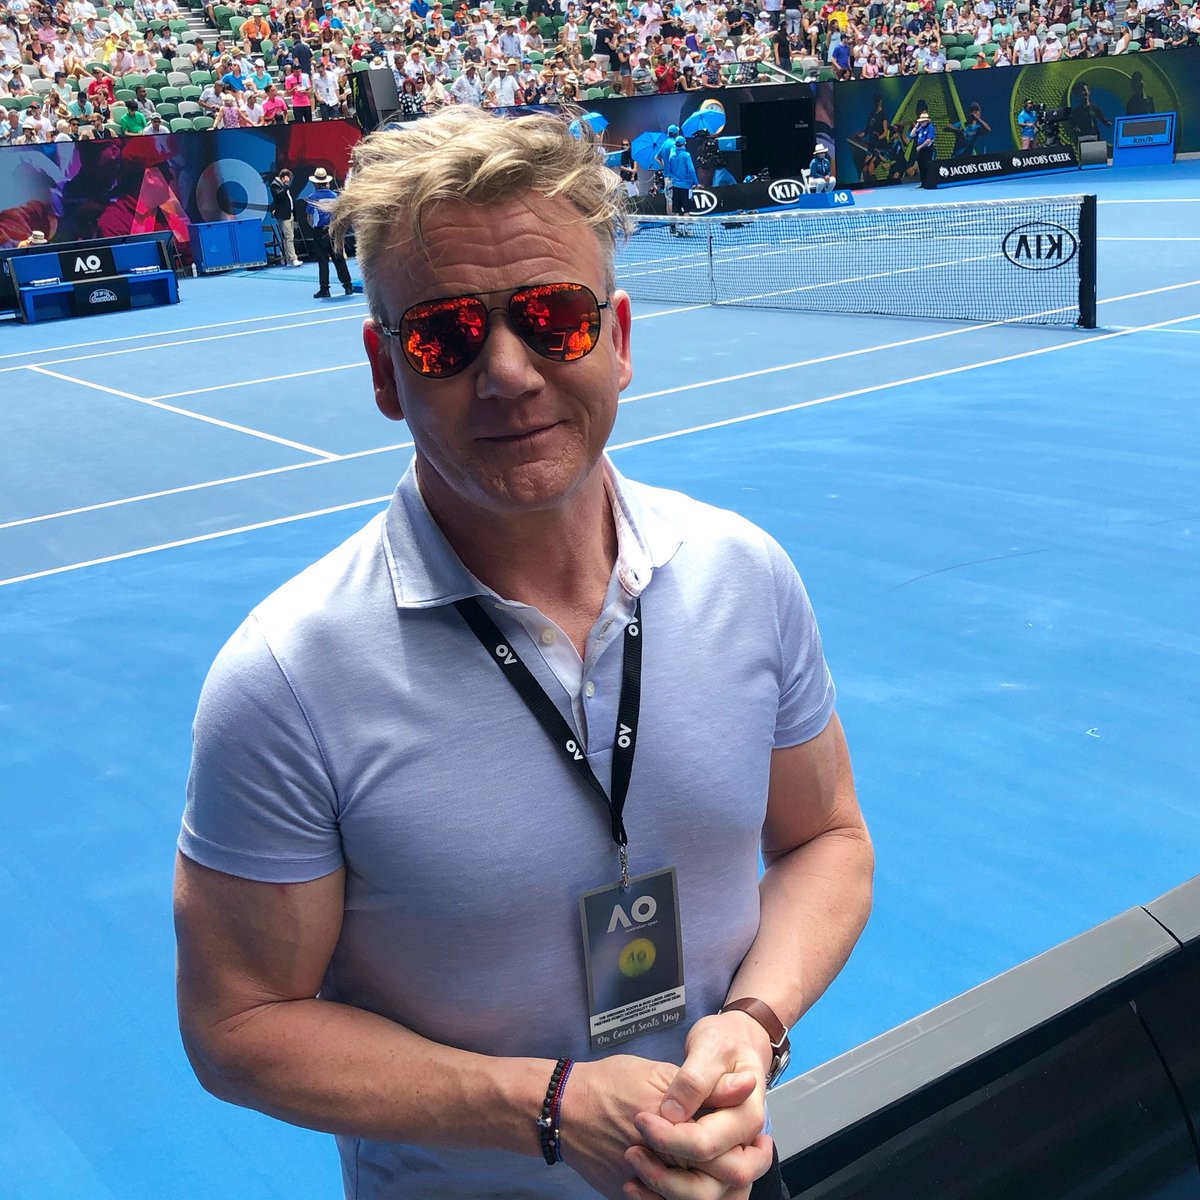 RT @GordonRamsay: Excited to see an amazing match today at the @AustralianOpen ! #ausopen #australia #melbourne https://t.co/xRcH4mxcKd